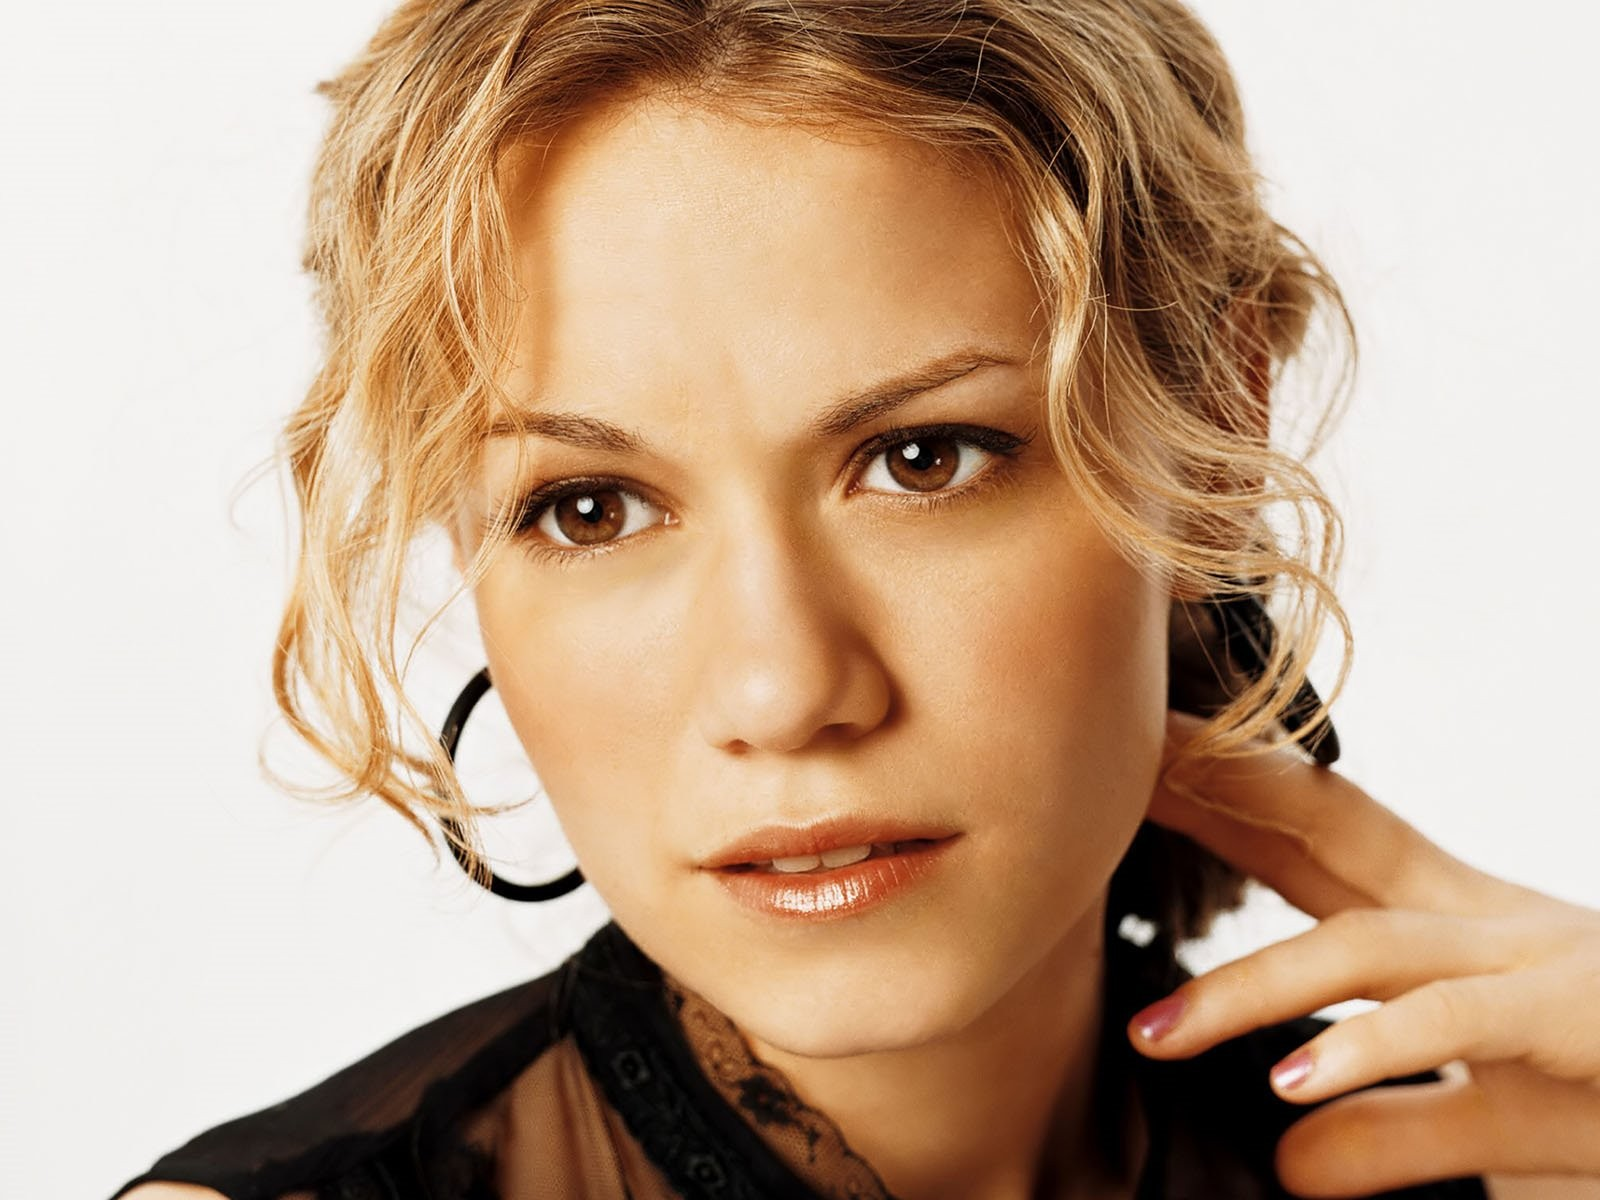 Wallpaper: un primo piano di Bethany Joy Galeotti